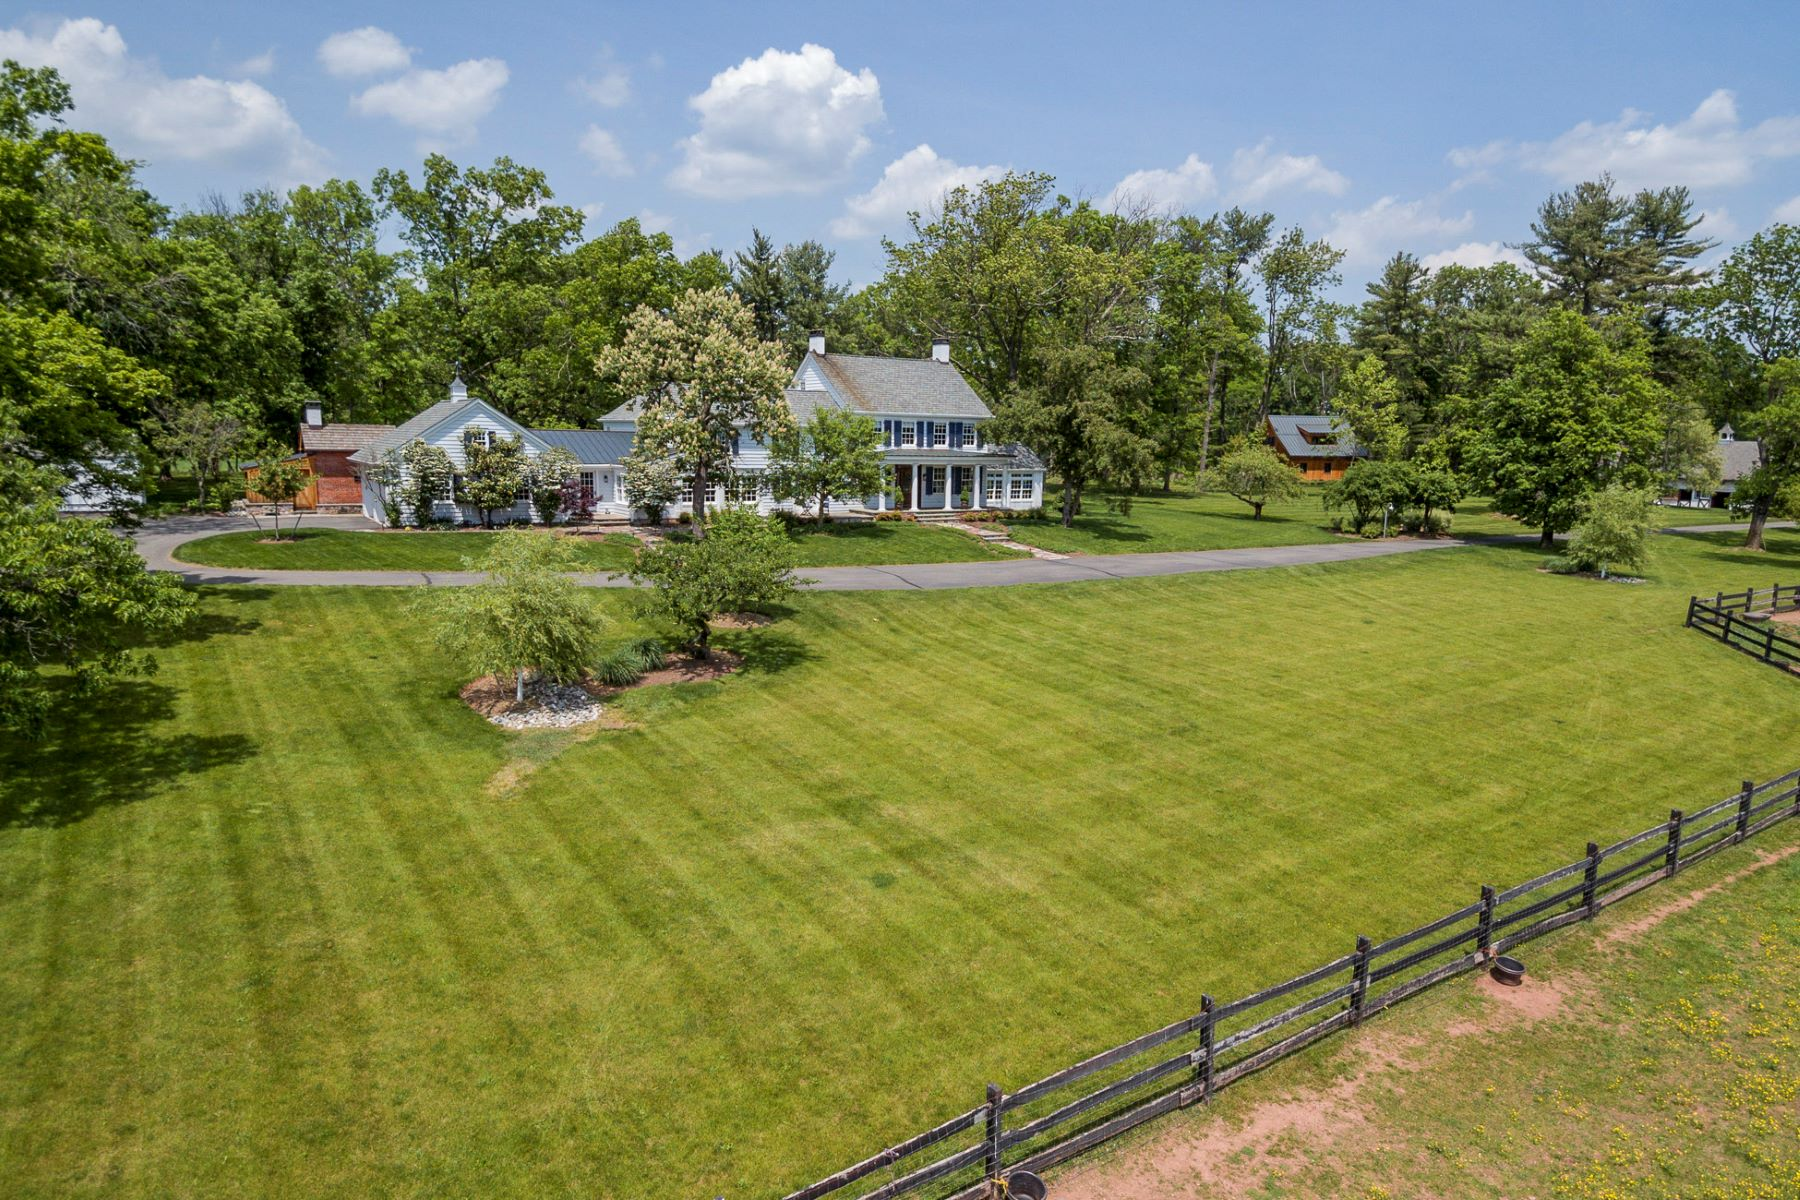 Single Family Home for Sale at Historic Farm Reimagined for the Modern Equestrian - Hopewell Township 266 Province Line Road, Skillman, New Jersey 08558 United StatesMunicipality: Hopewell Township